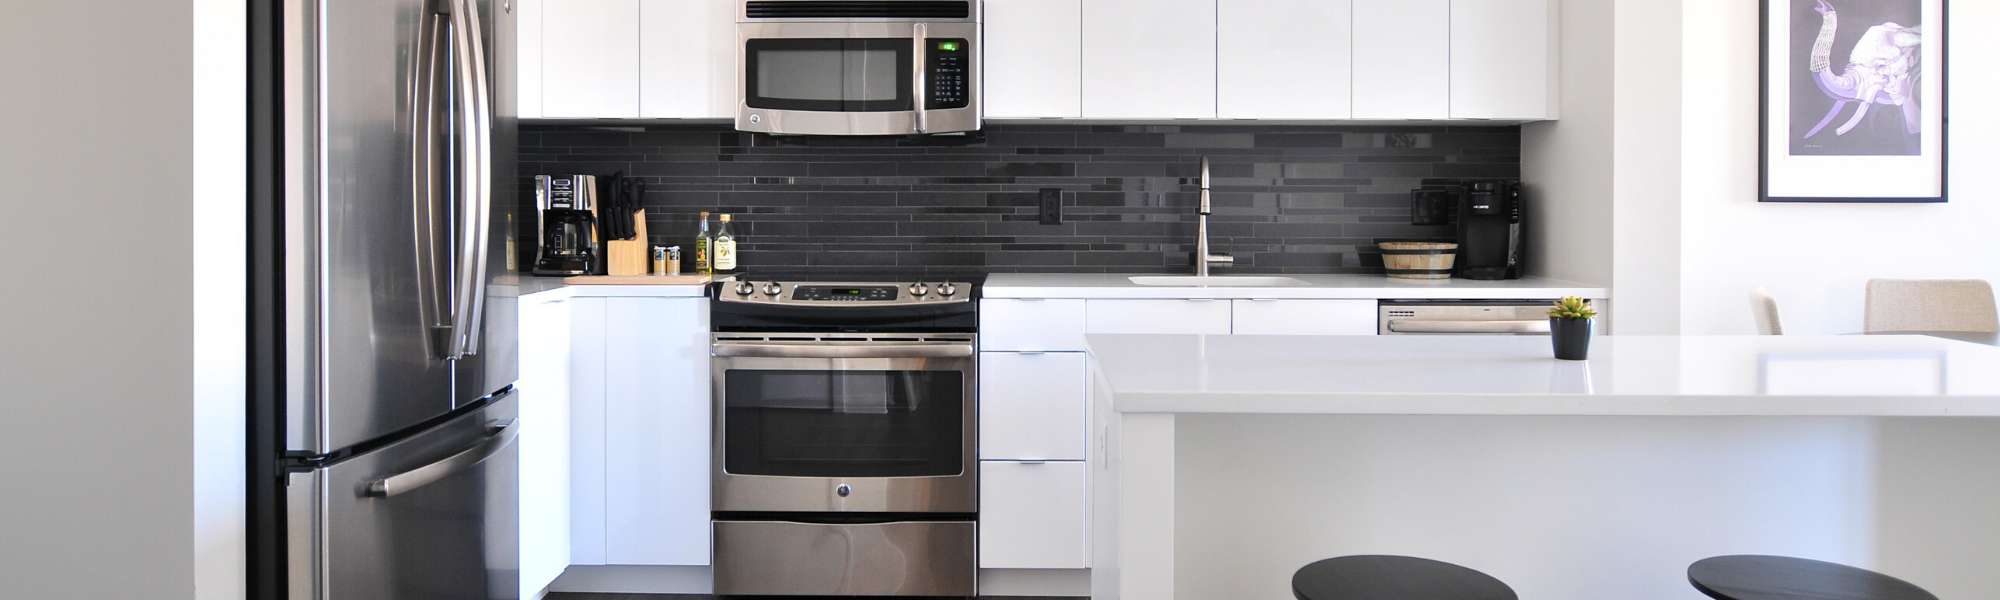 Information for sellers header image showing a white and stainless steel bright kitchen.